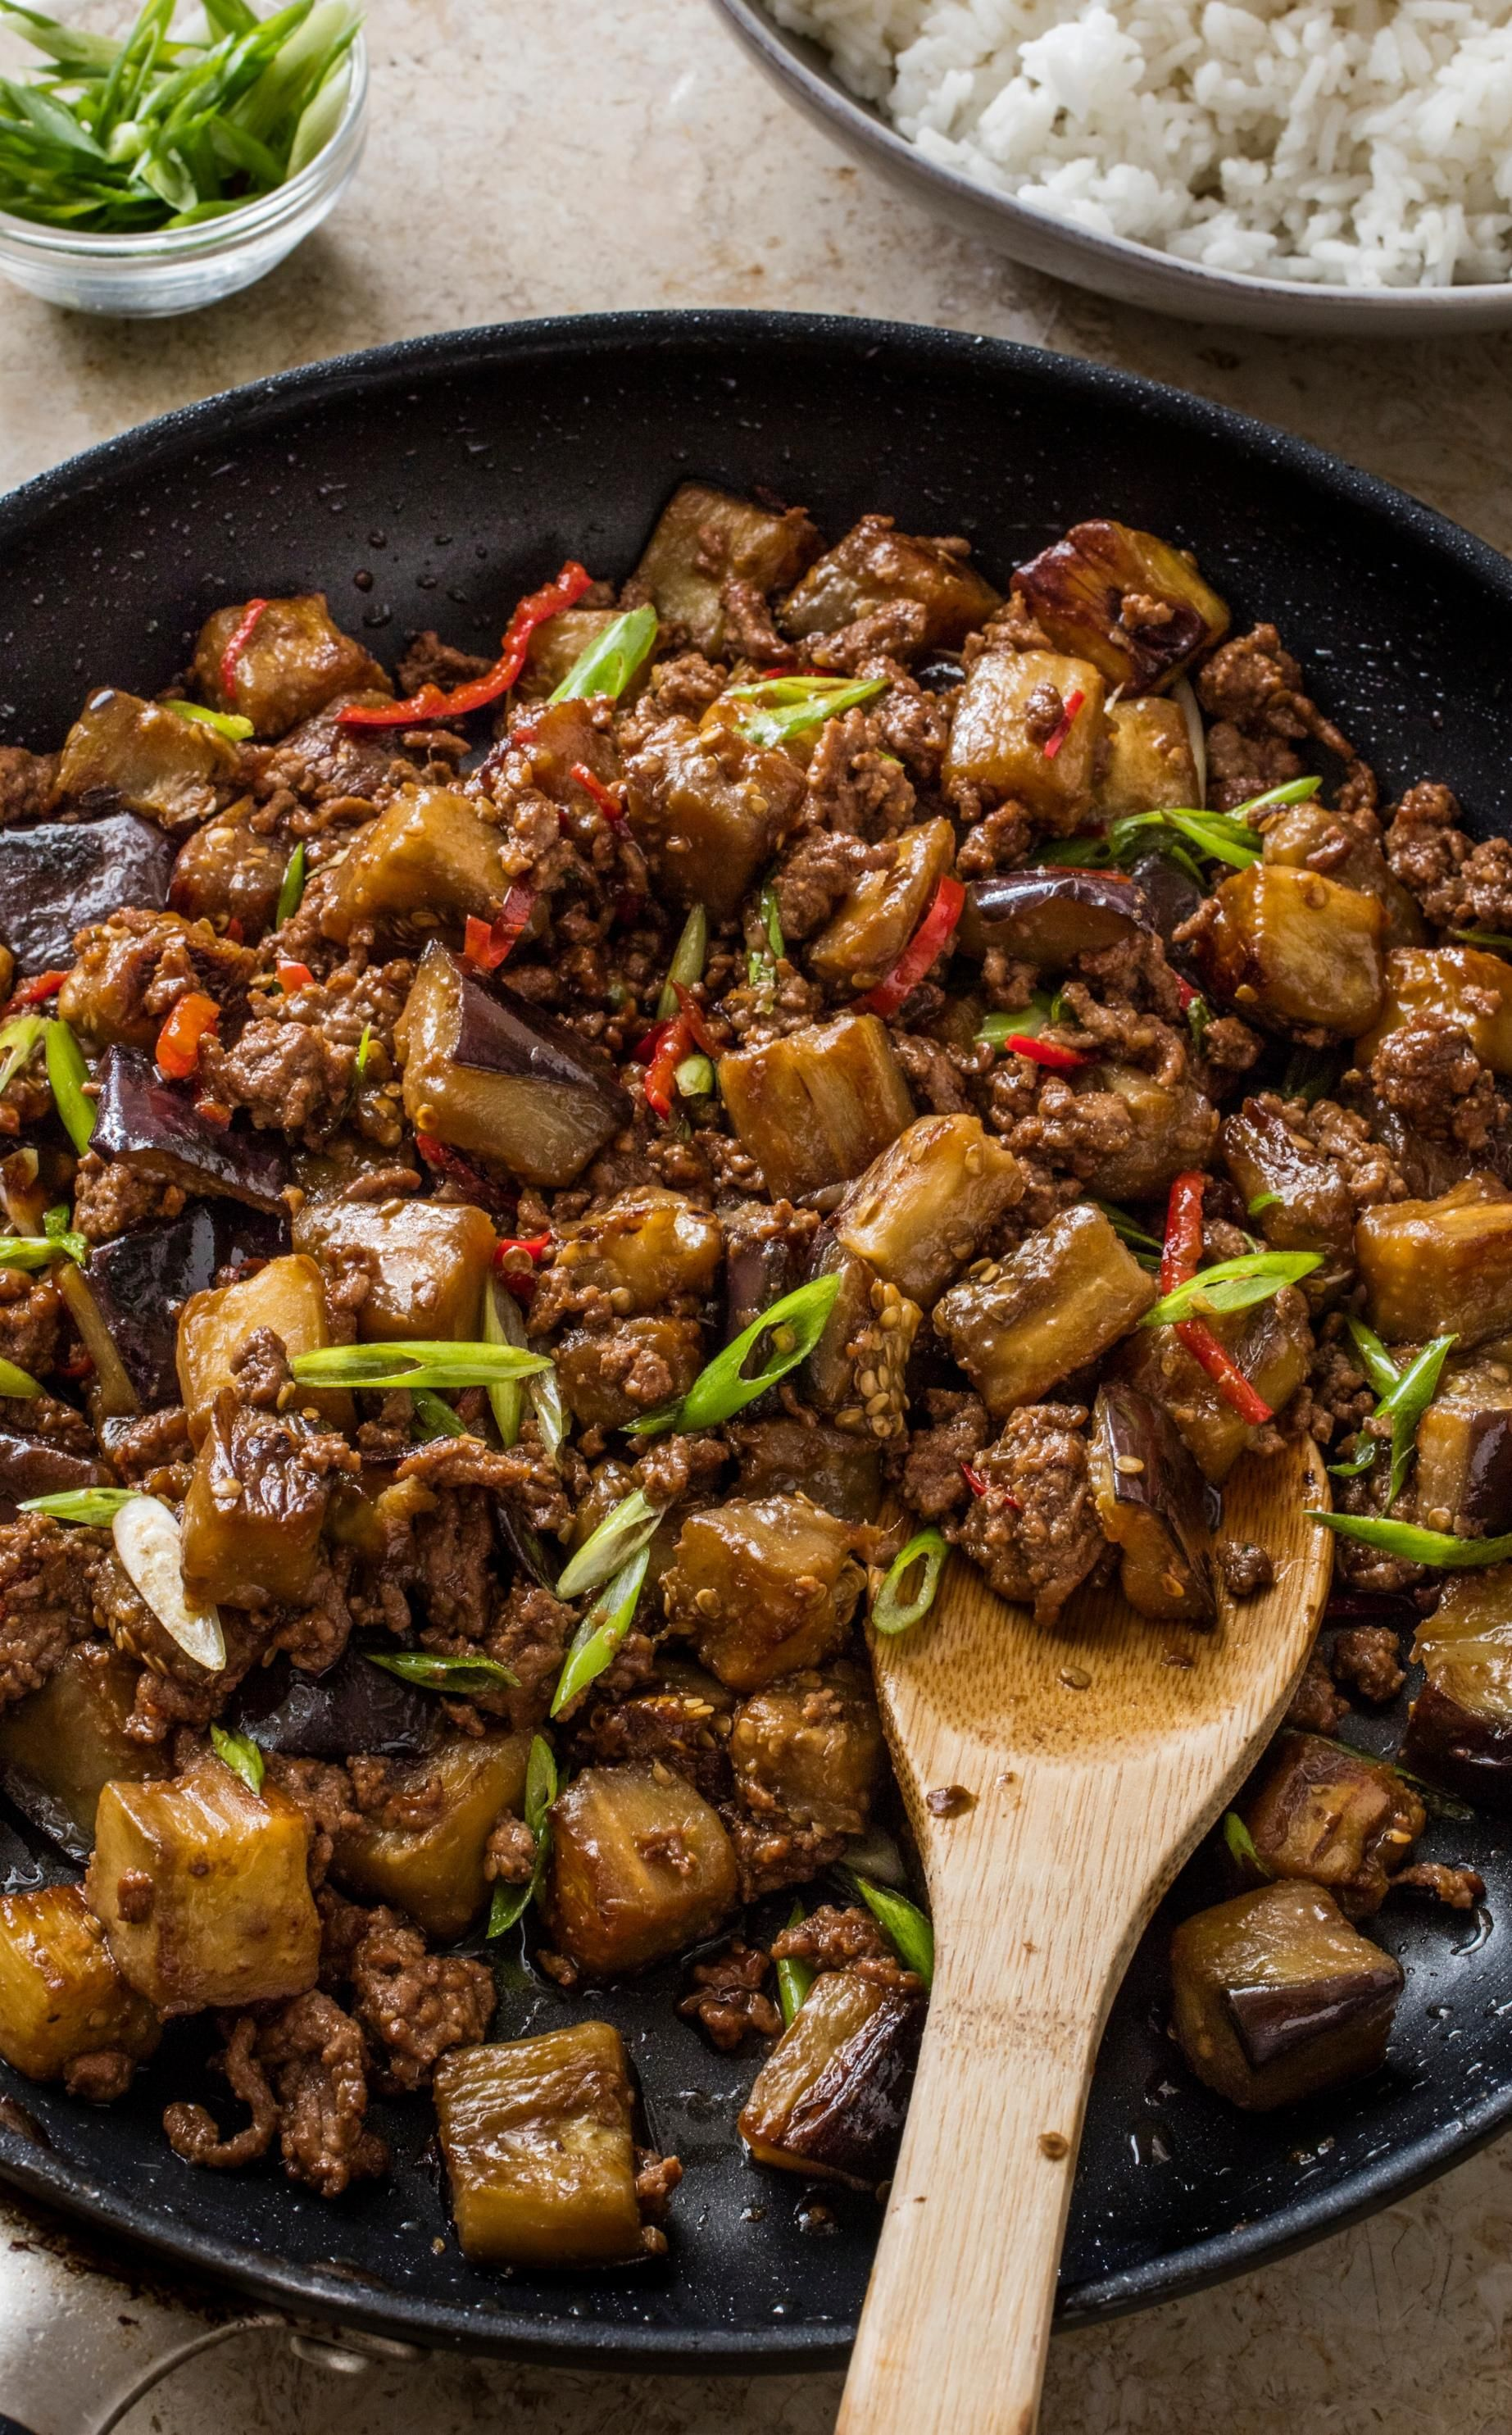 Chinese Style Beef And Eggplant Cook S Country Recipe Eggplant Recipes Asian Oriental Dishes Food